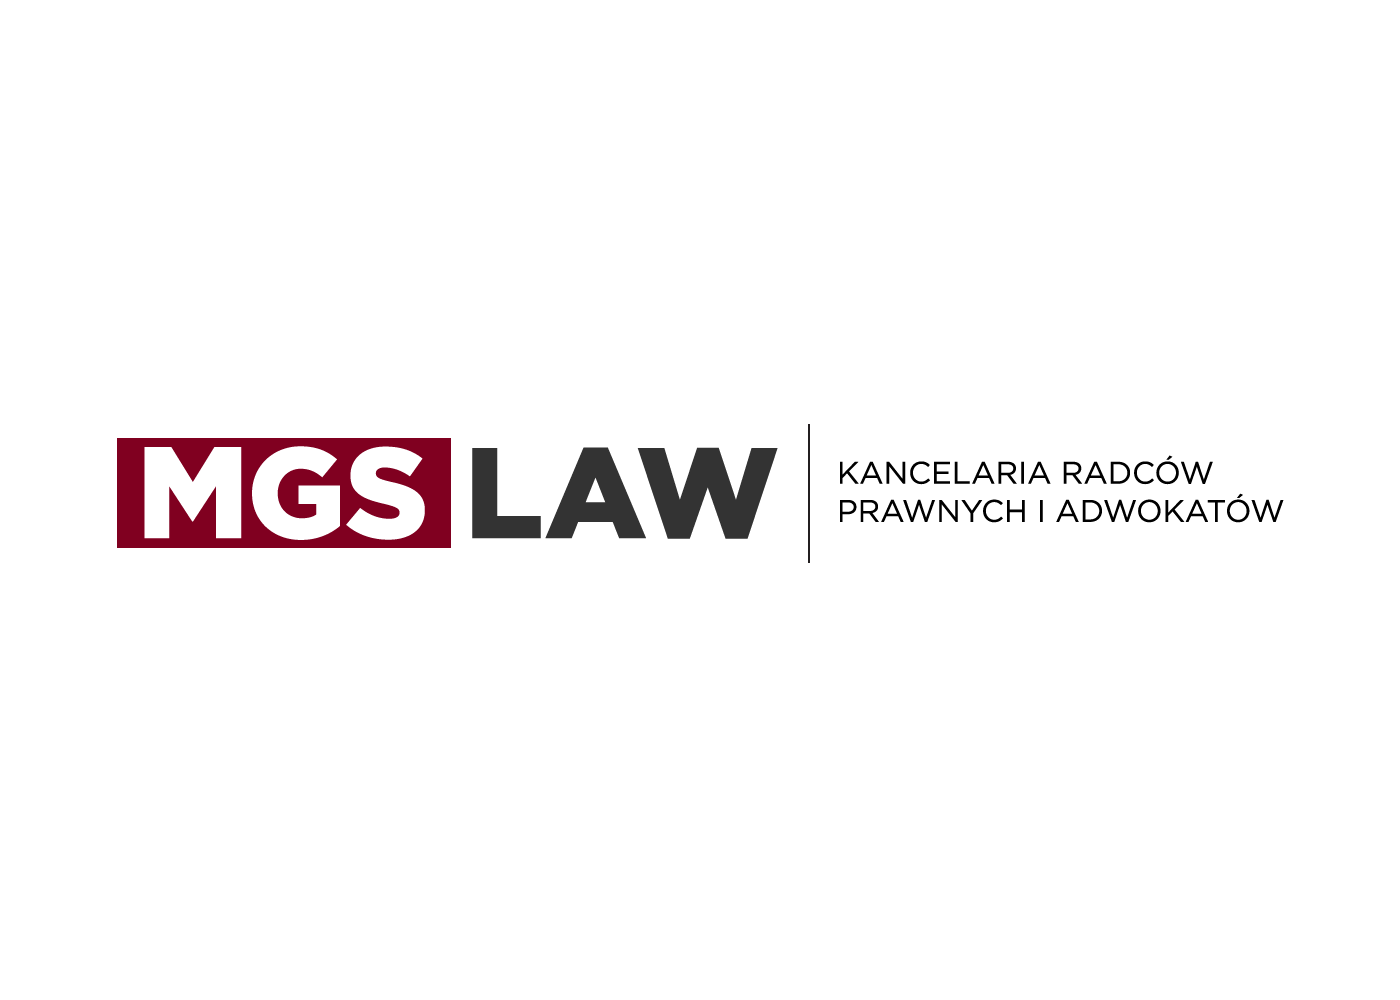 MGS Law